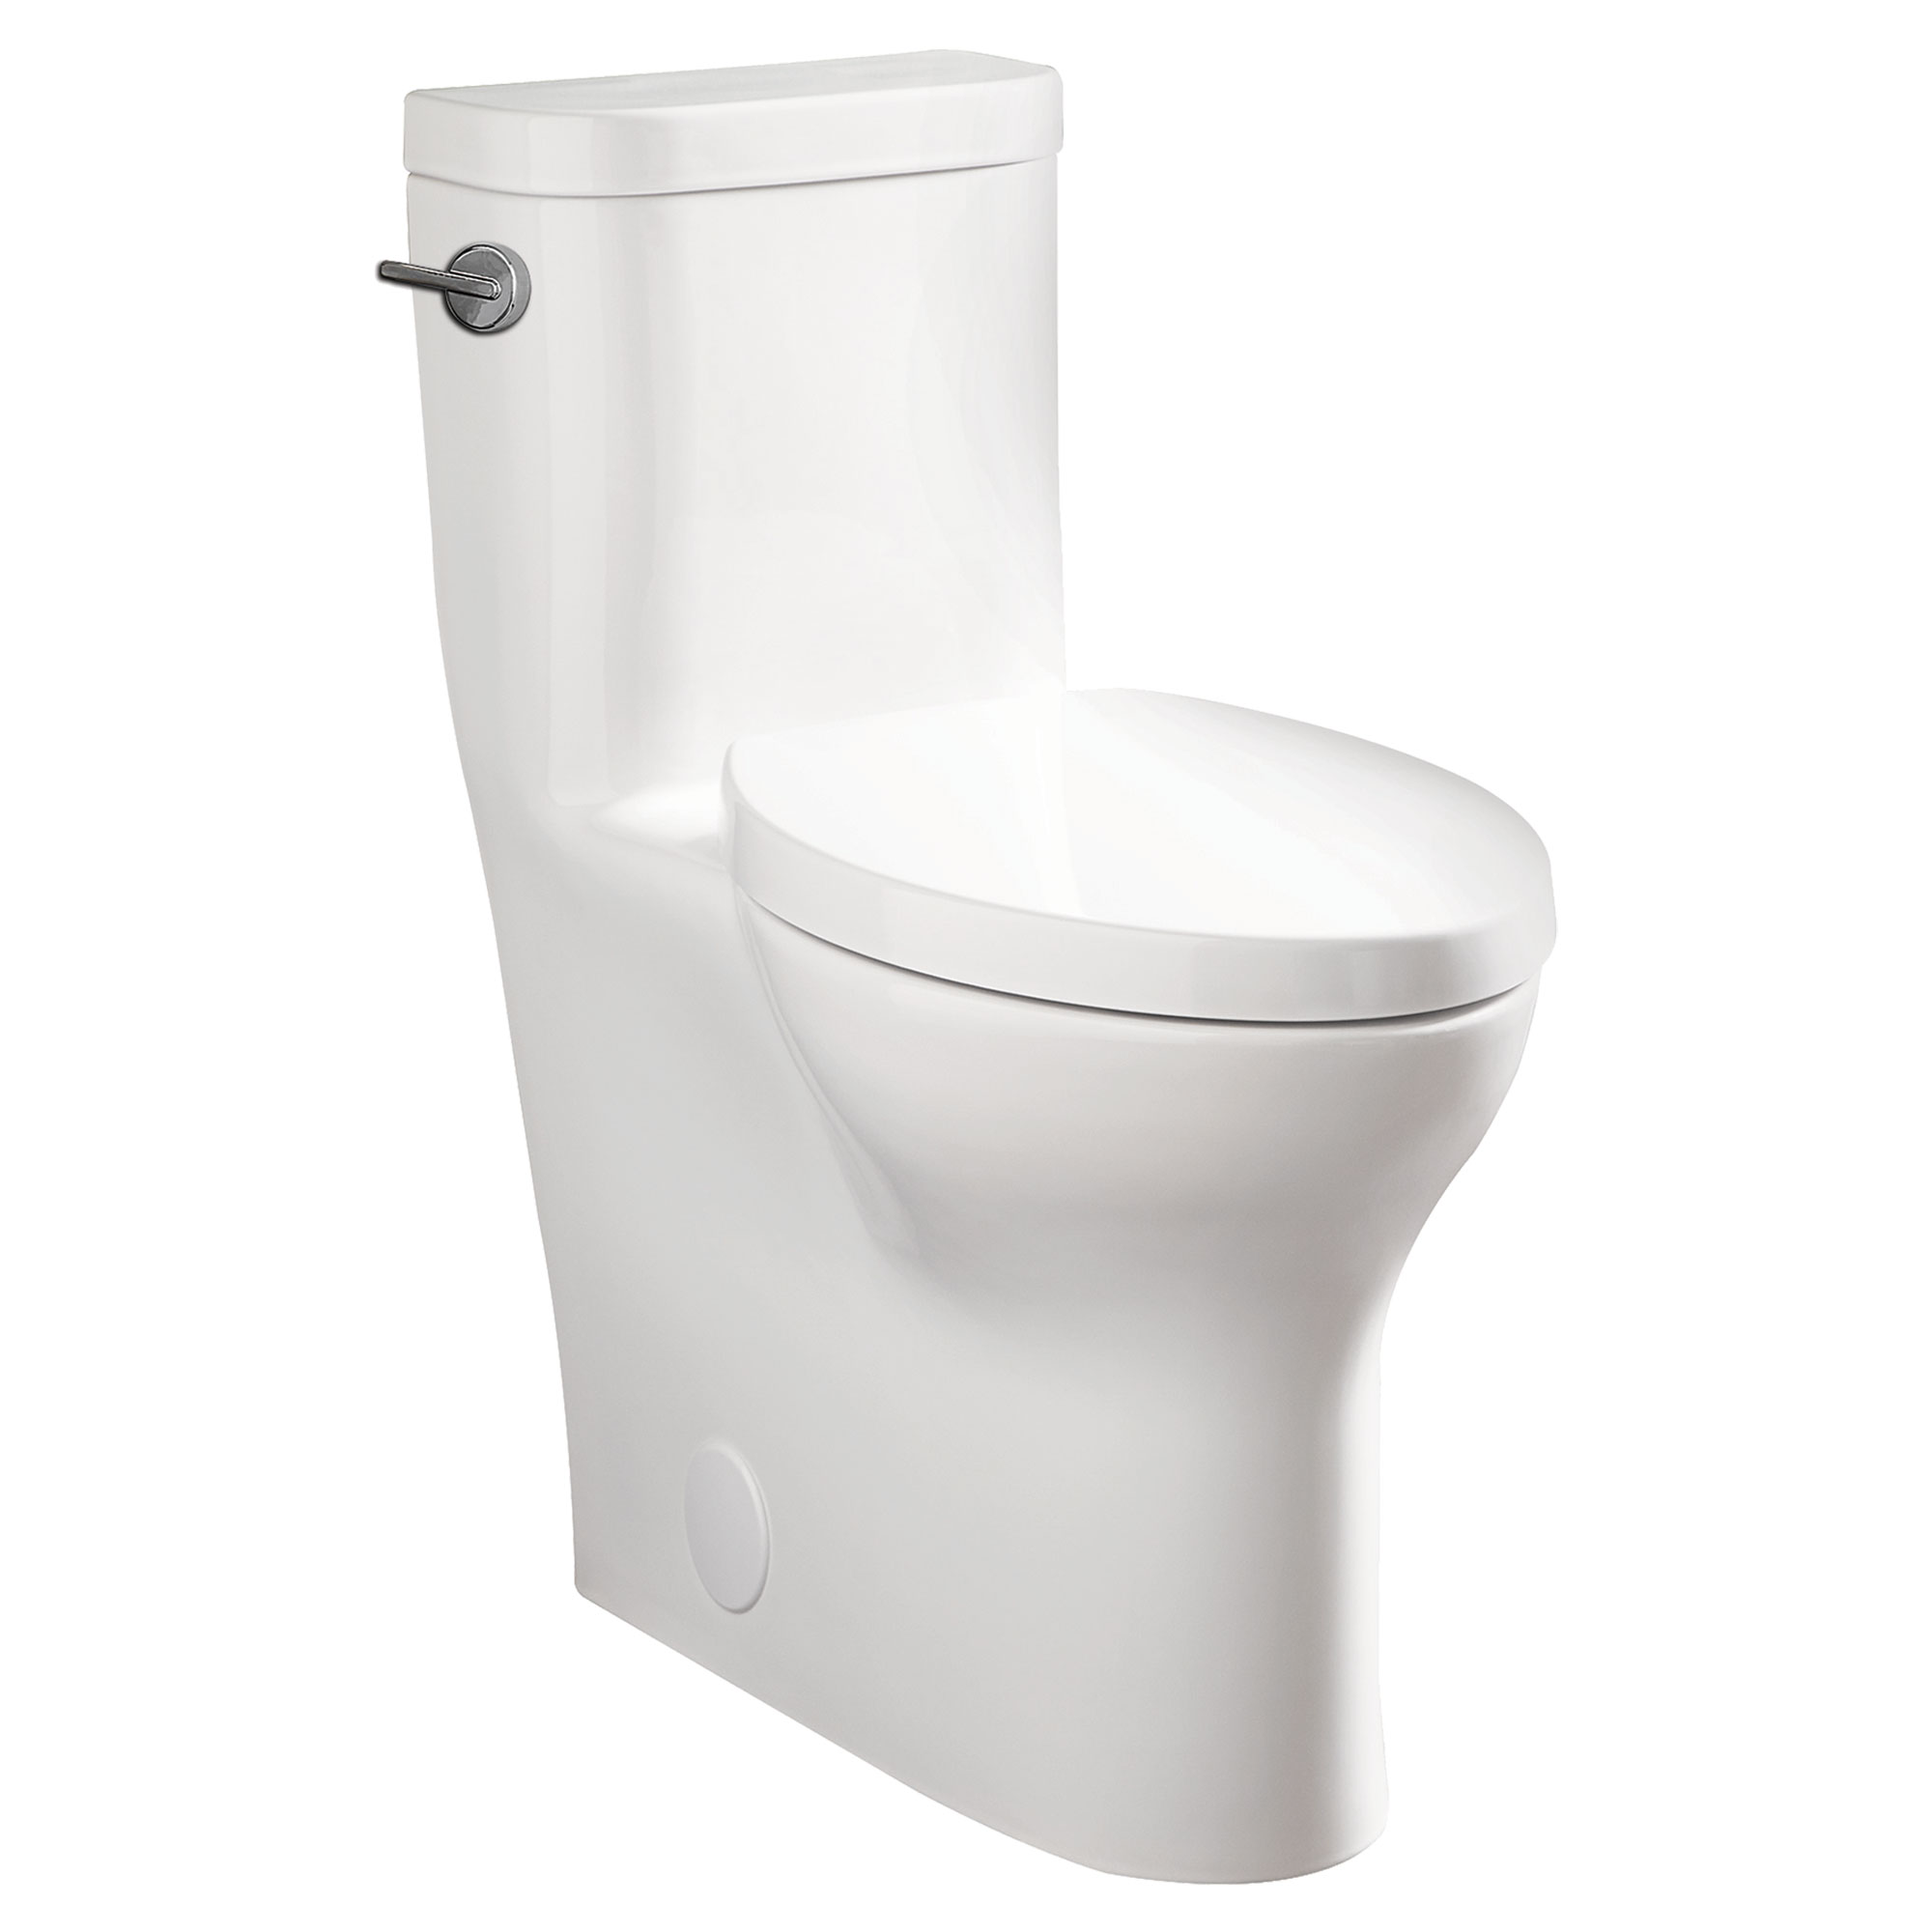 Equility Elongated One-Piece Toilet